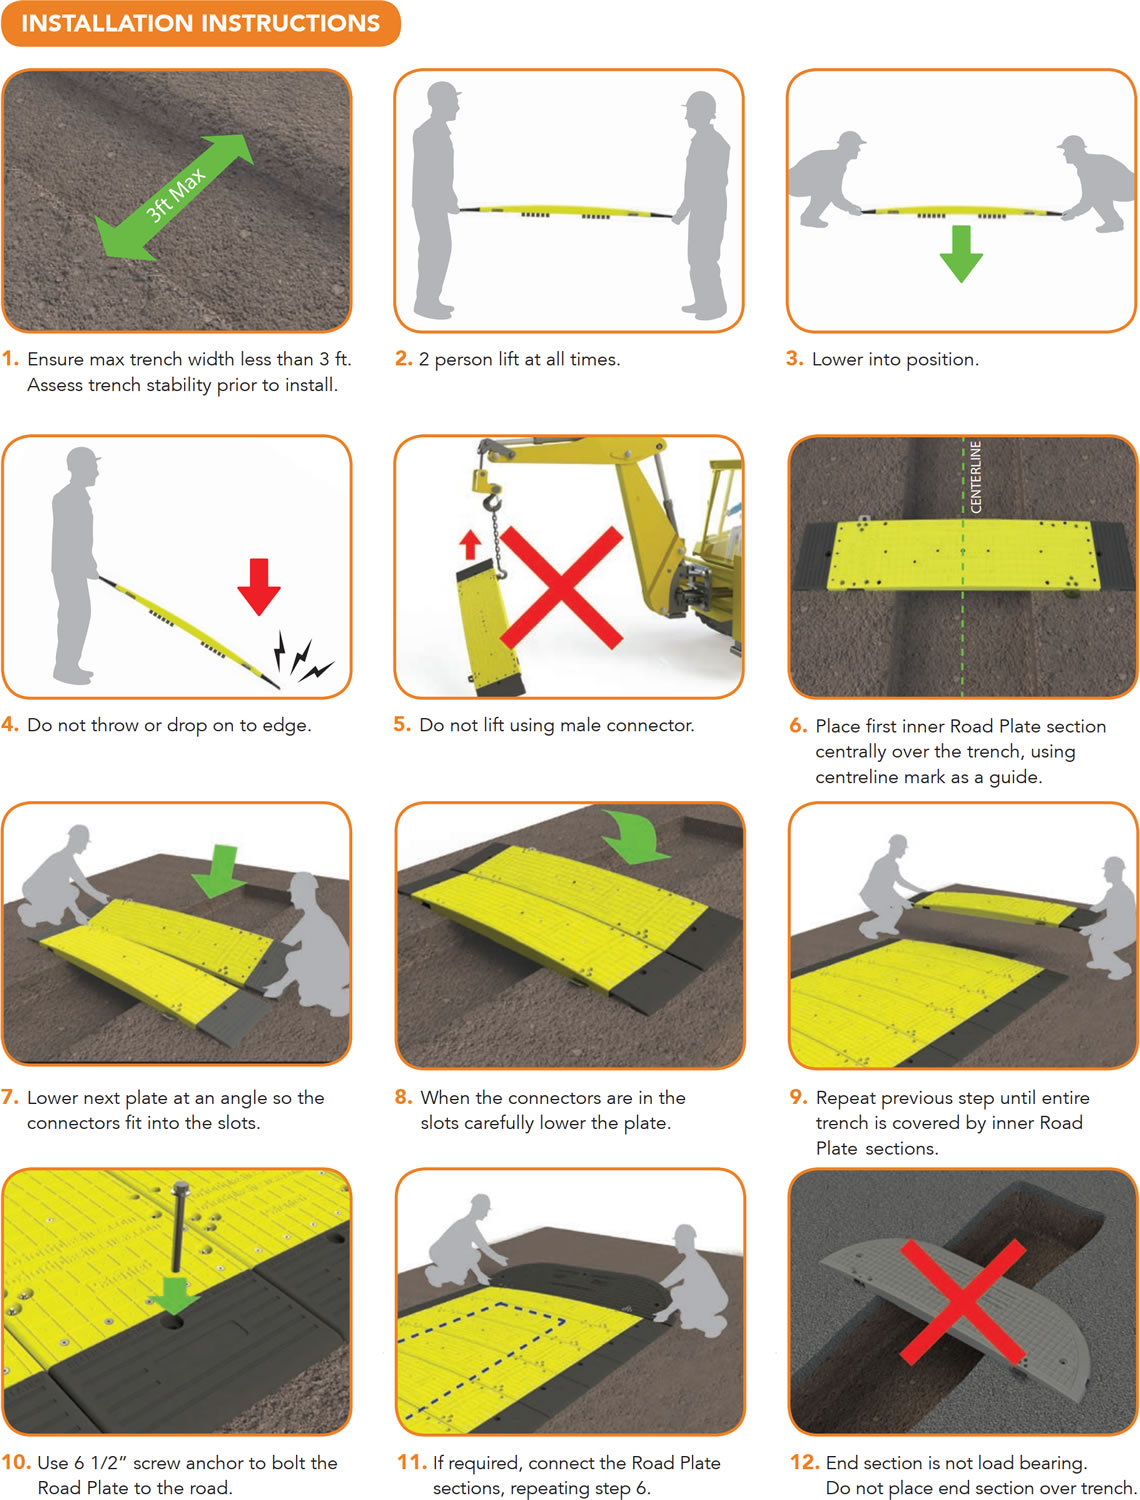 Instructions on how to install Oxford Low Pro 23/05 Road Plate